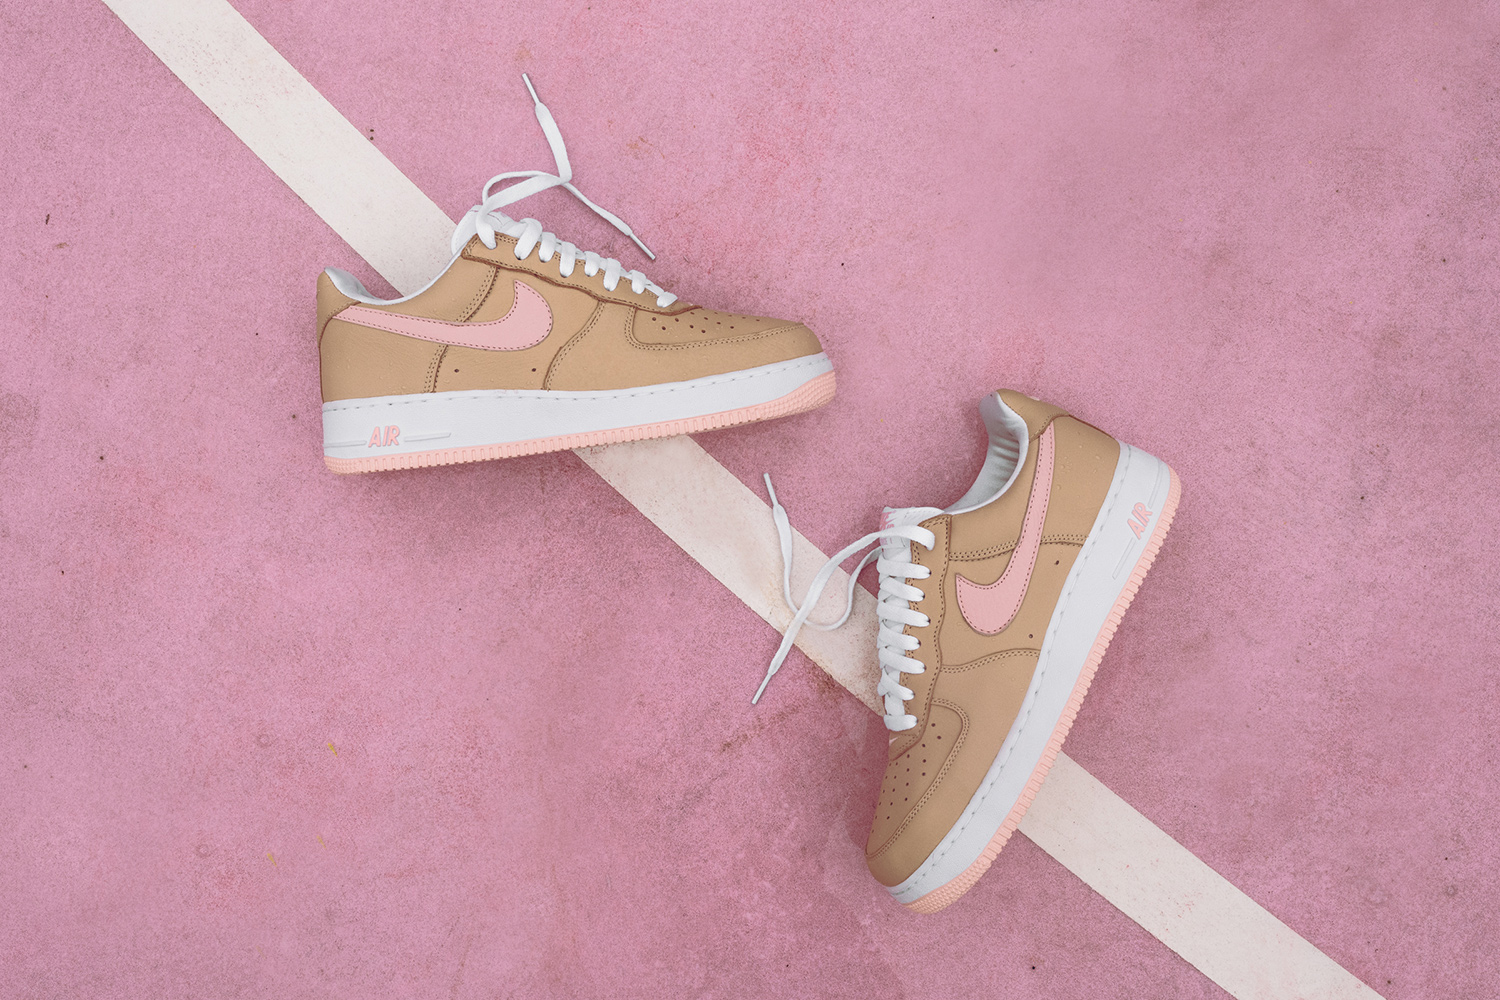 Nike Re-Release The Air Force 1 Linen